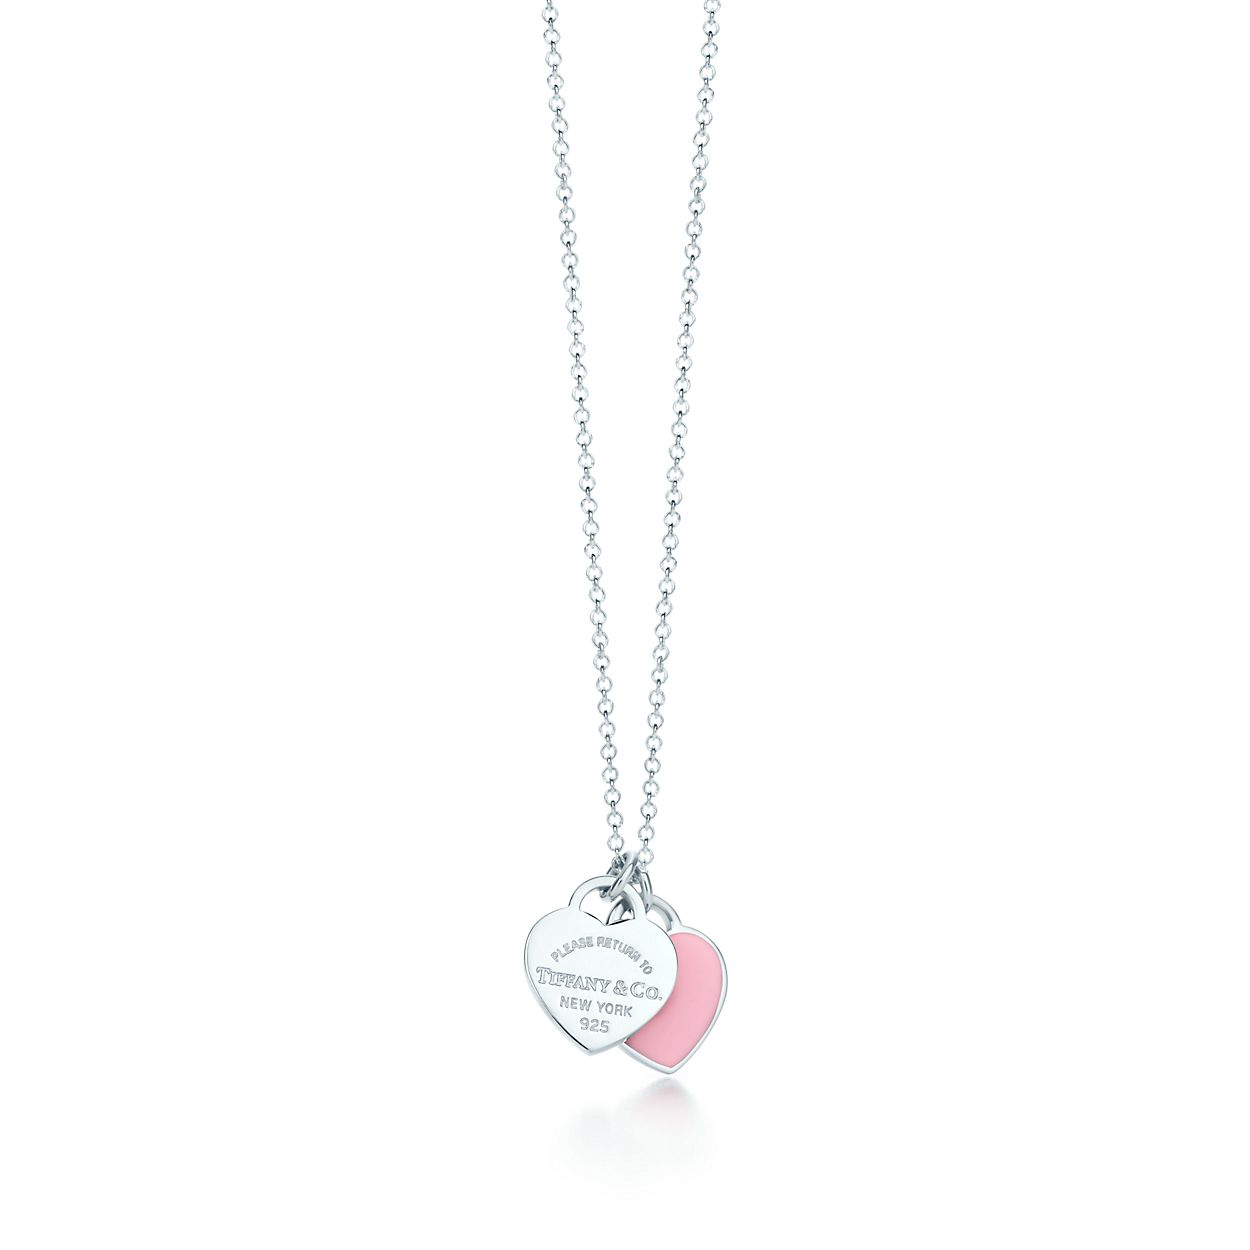 Return to tiffany mini double heart tag pendant in silver with pink return to tiffanymini double heart tagbrpendant aloadofball Gallery